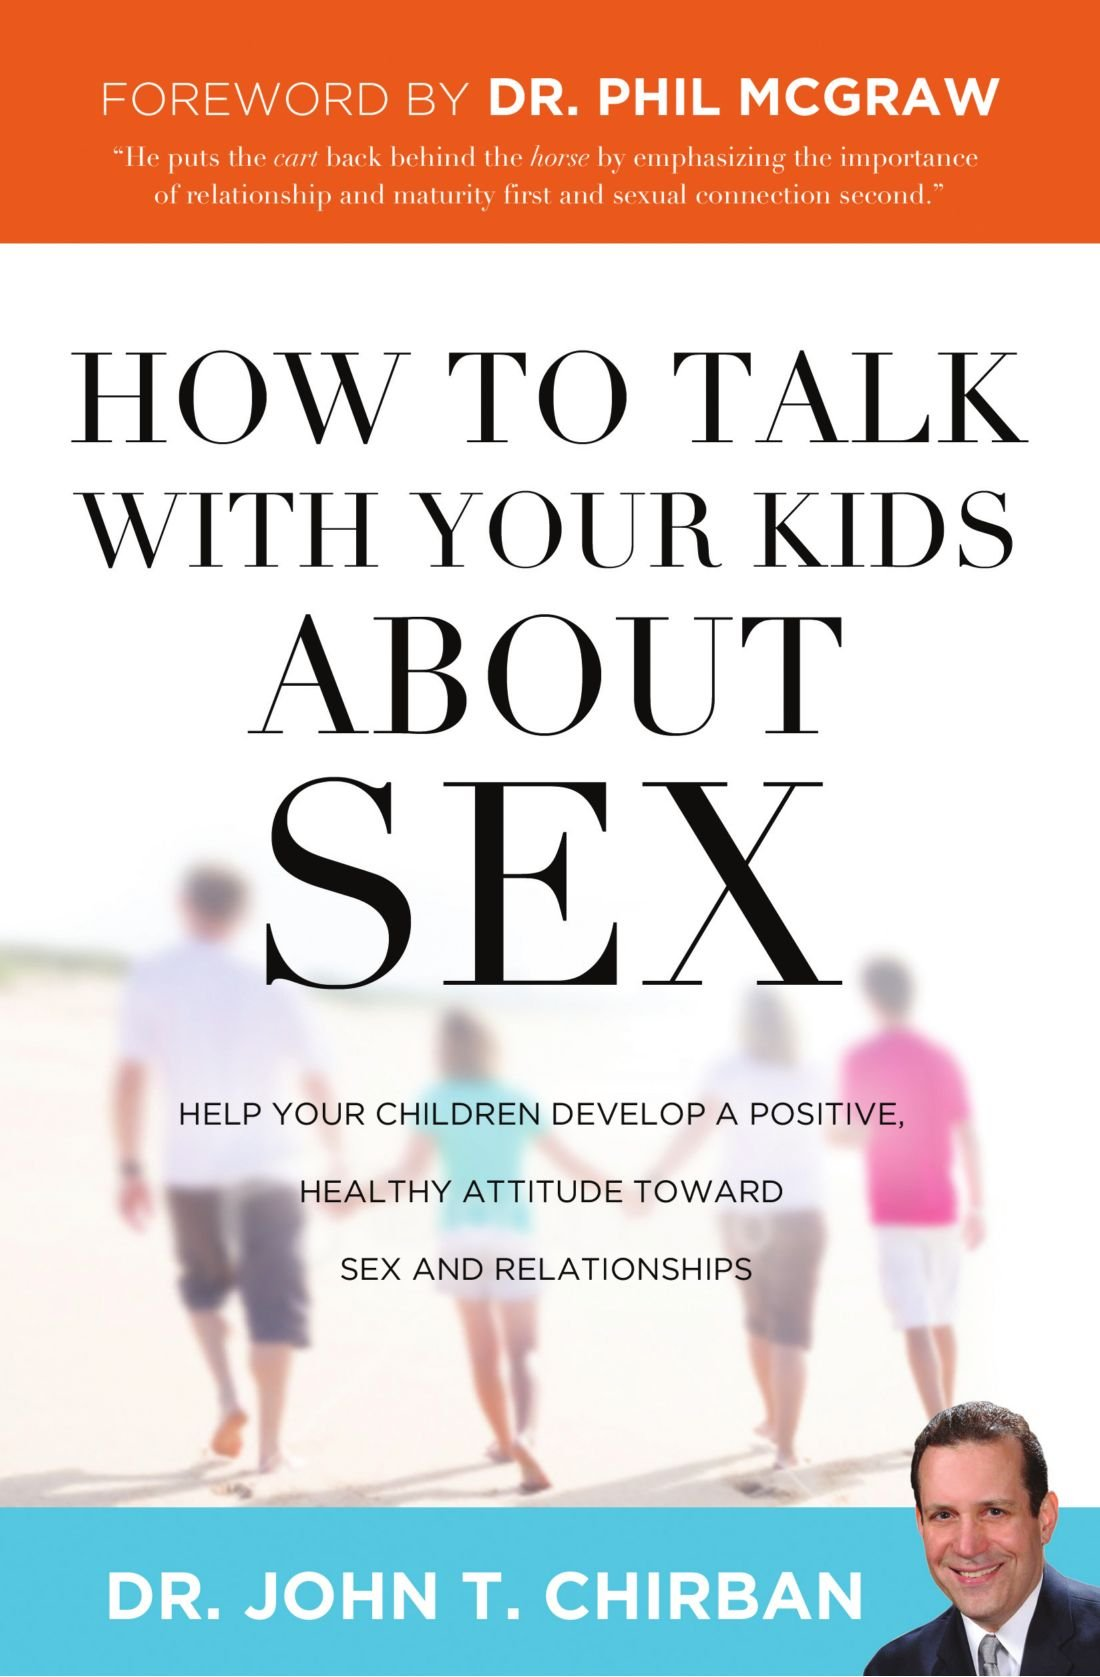 How to Talk to Your Kids About Separation Divorce